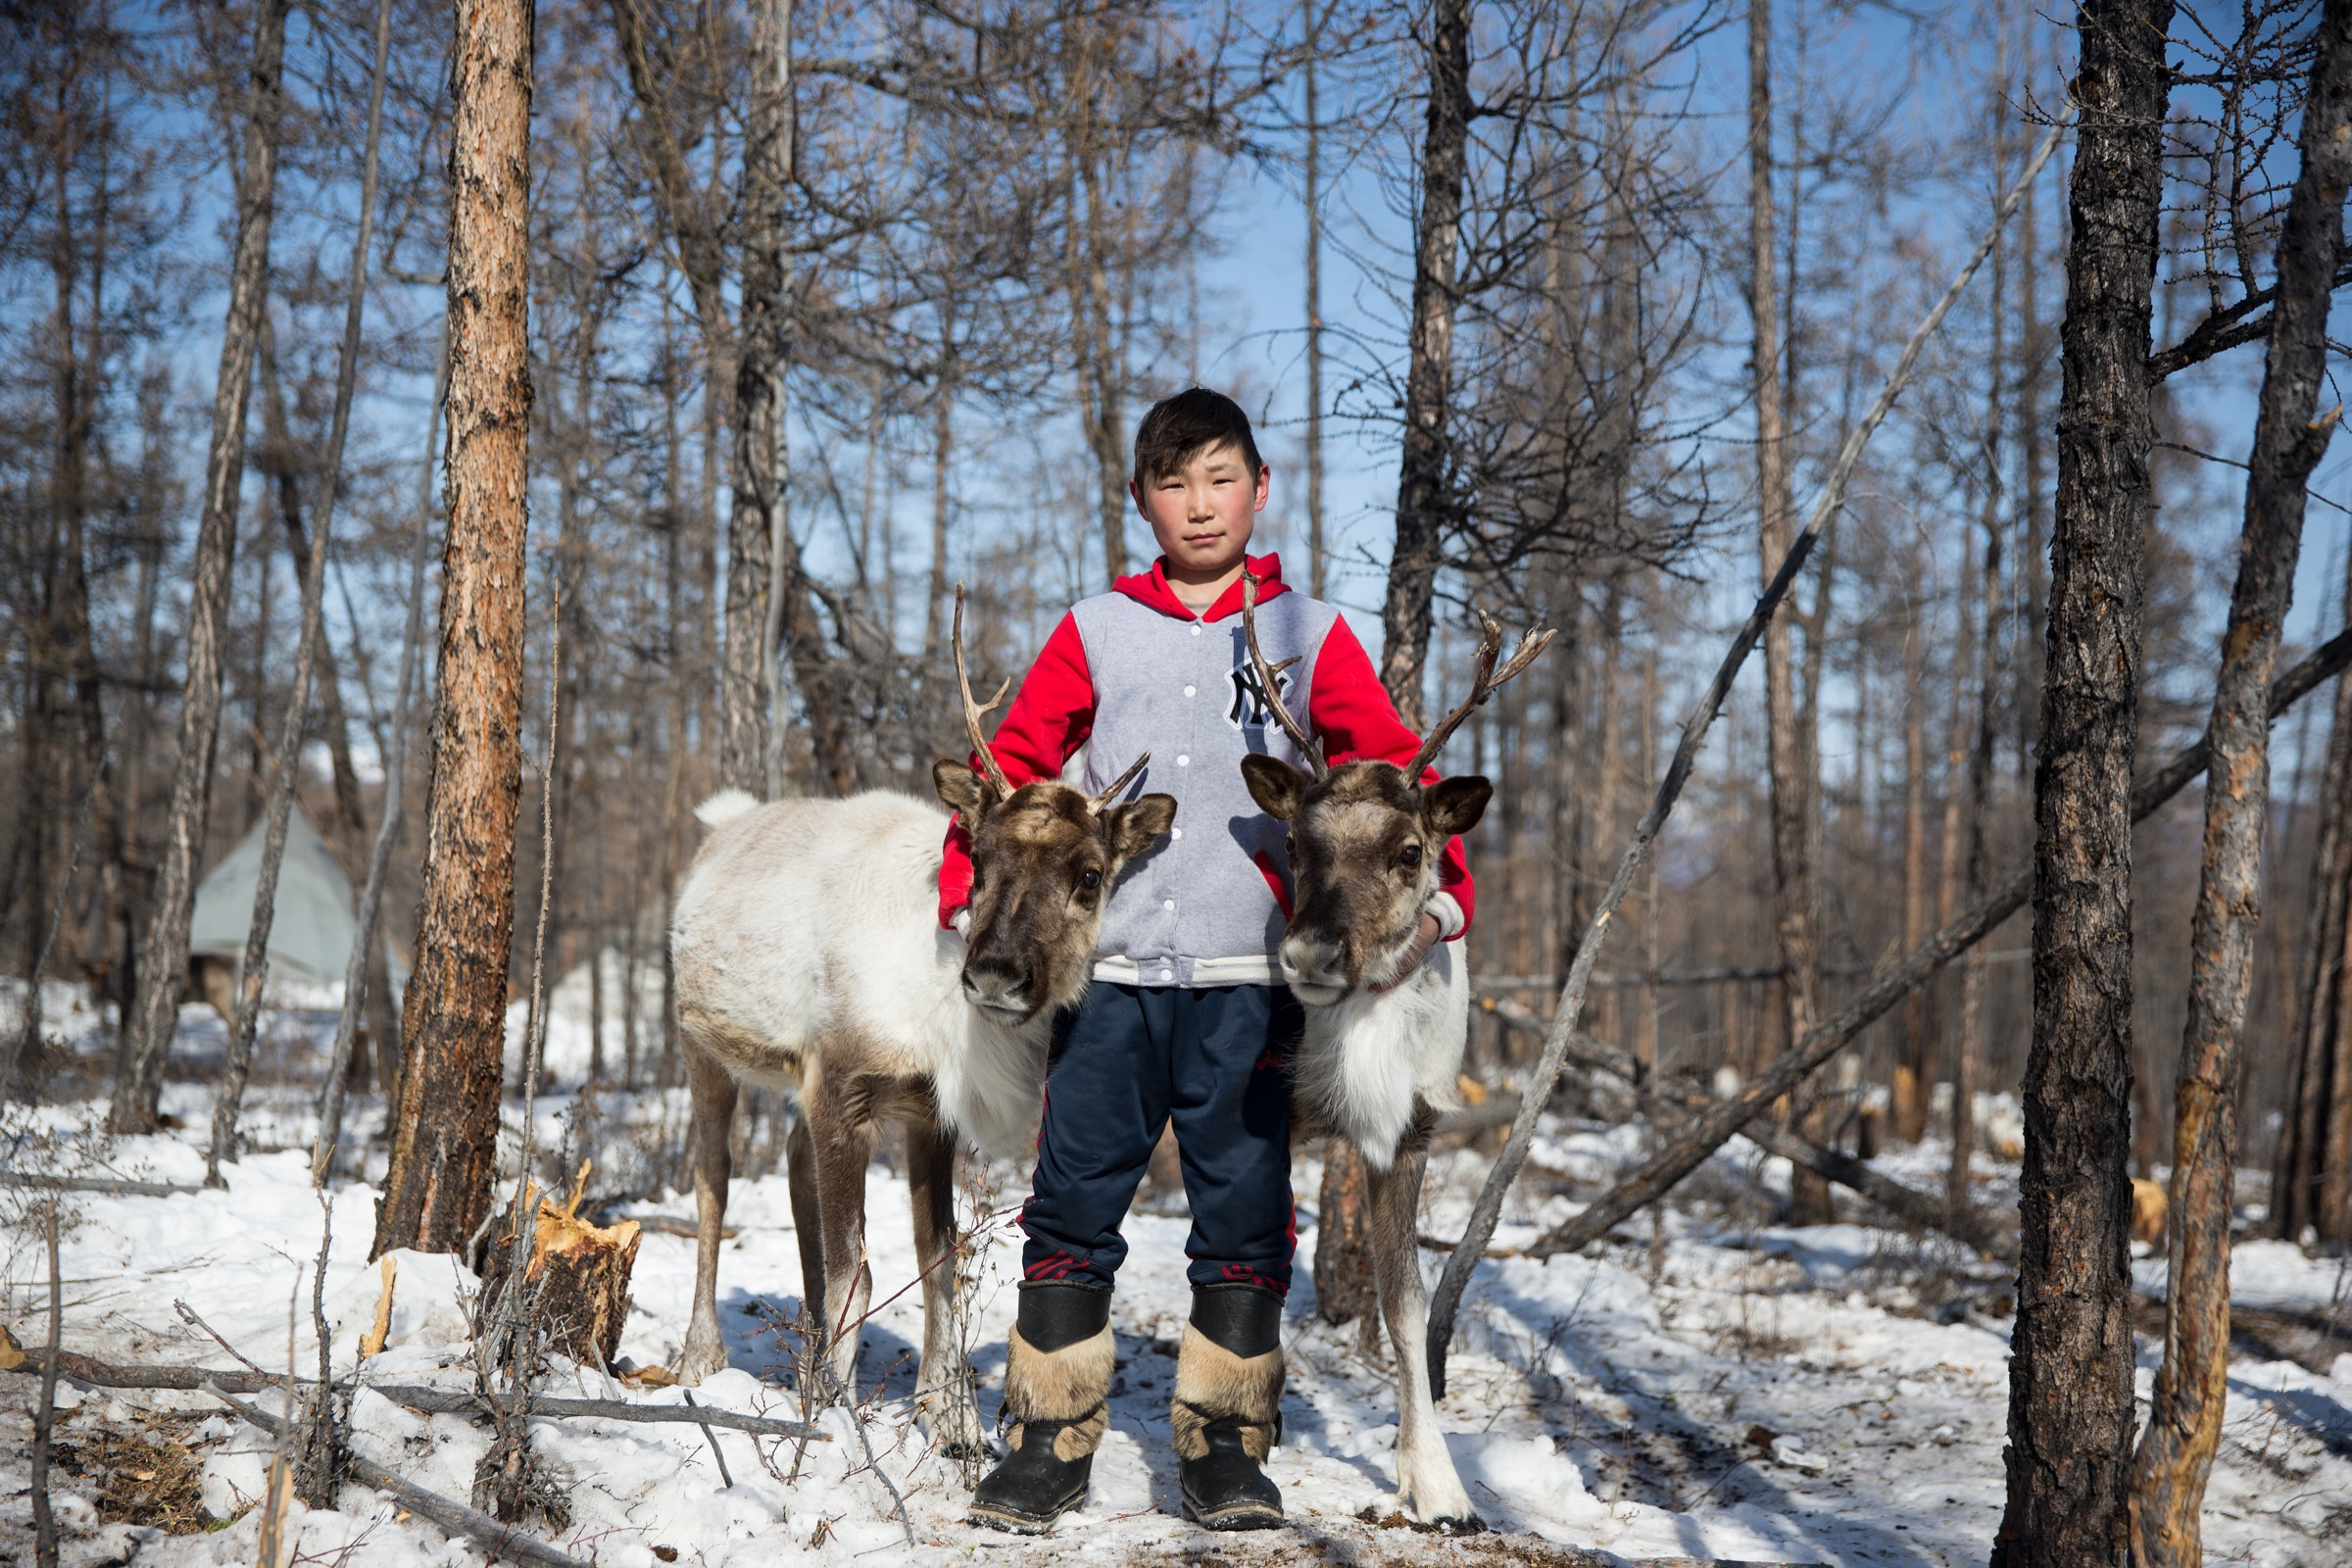 The Dukha are close to their animals from an early age. Here, a boy poses with two reindeer near Tsagaan Nuur, Mongolia.